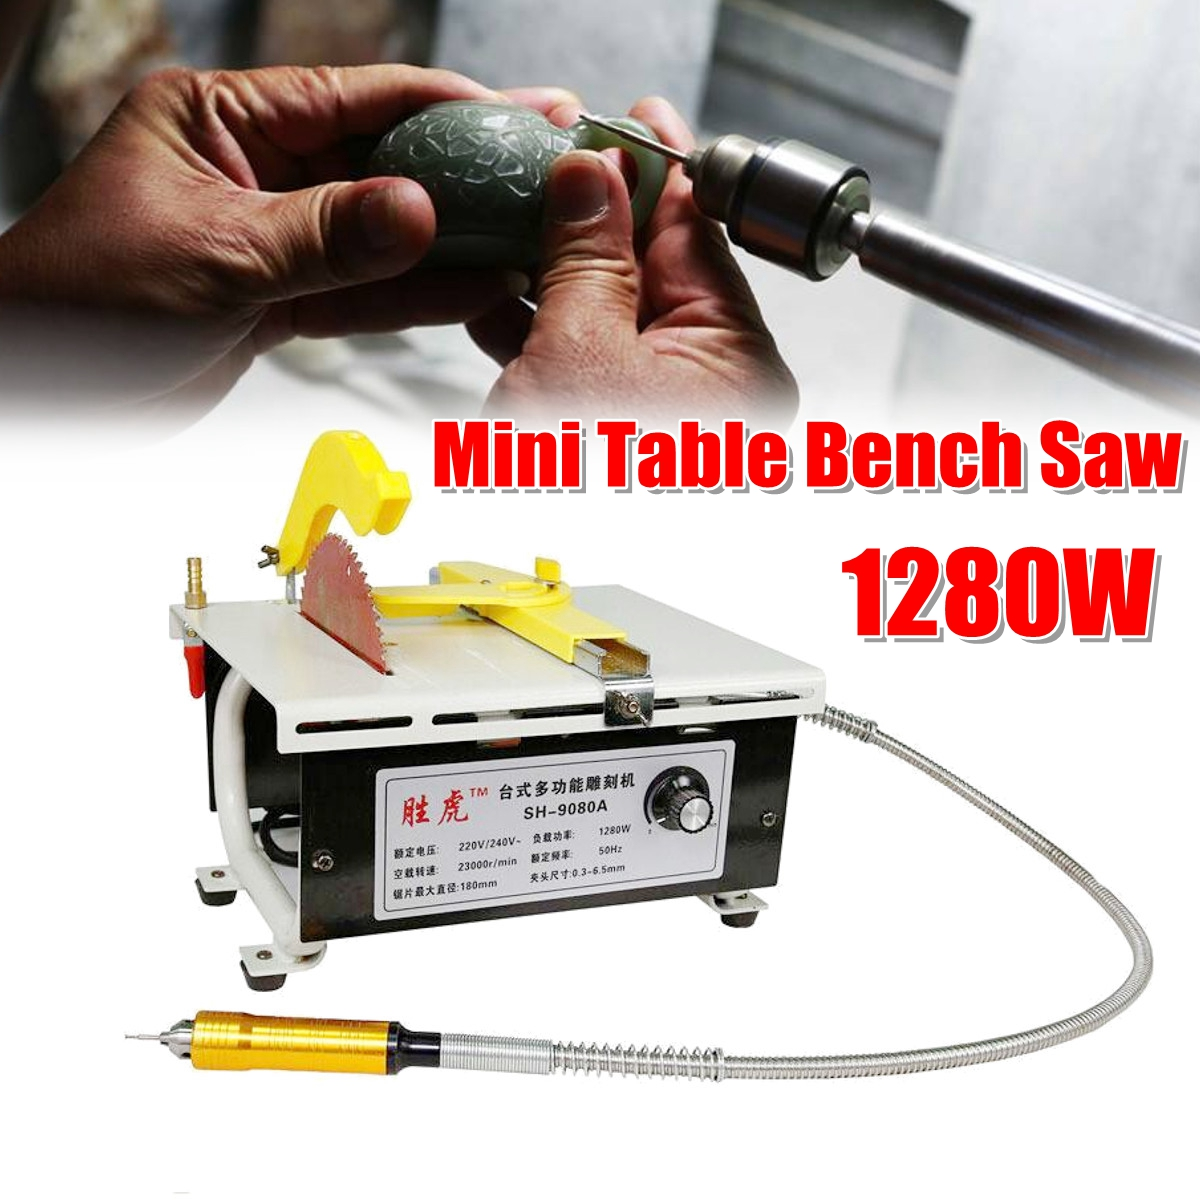 Multifunction 1280W Mini Table Bench Saw Engraving Machine DIY Model Saw Cutting Polishing Machine For Bodhi Ivory Carving diy circular table saw blade cutting engraving mini bench saw 775 dc motor strong magnetic 118xl synchronous belt and wheel